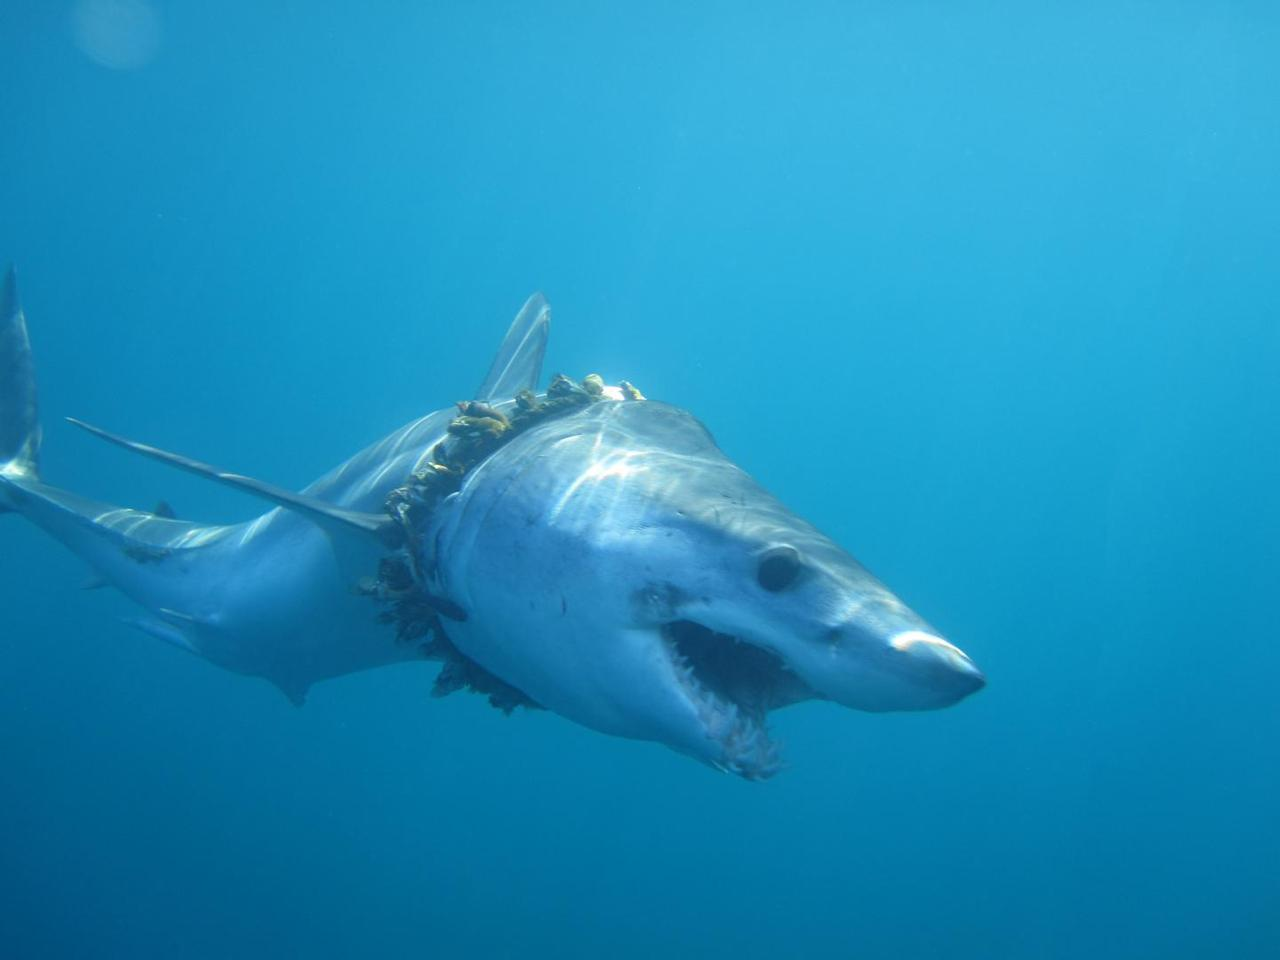 A shortfin mako shark with scoliosis of the back caused by tangled barnacle-covered fishing rope